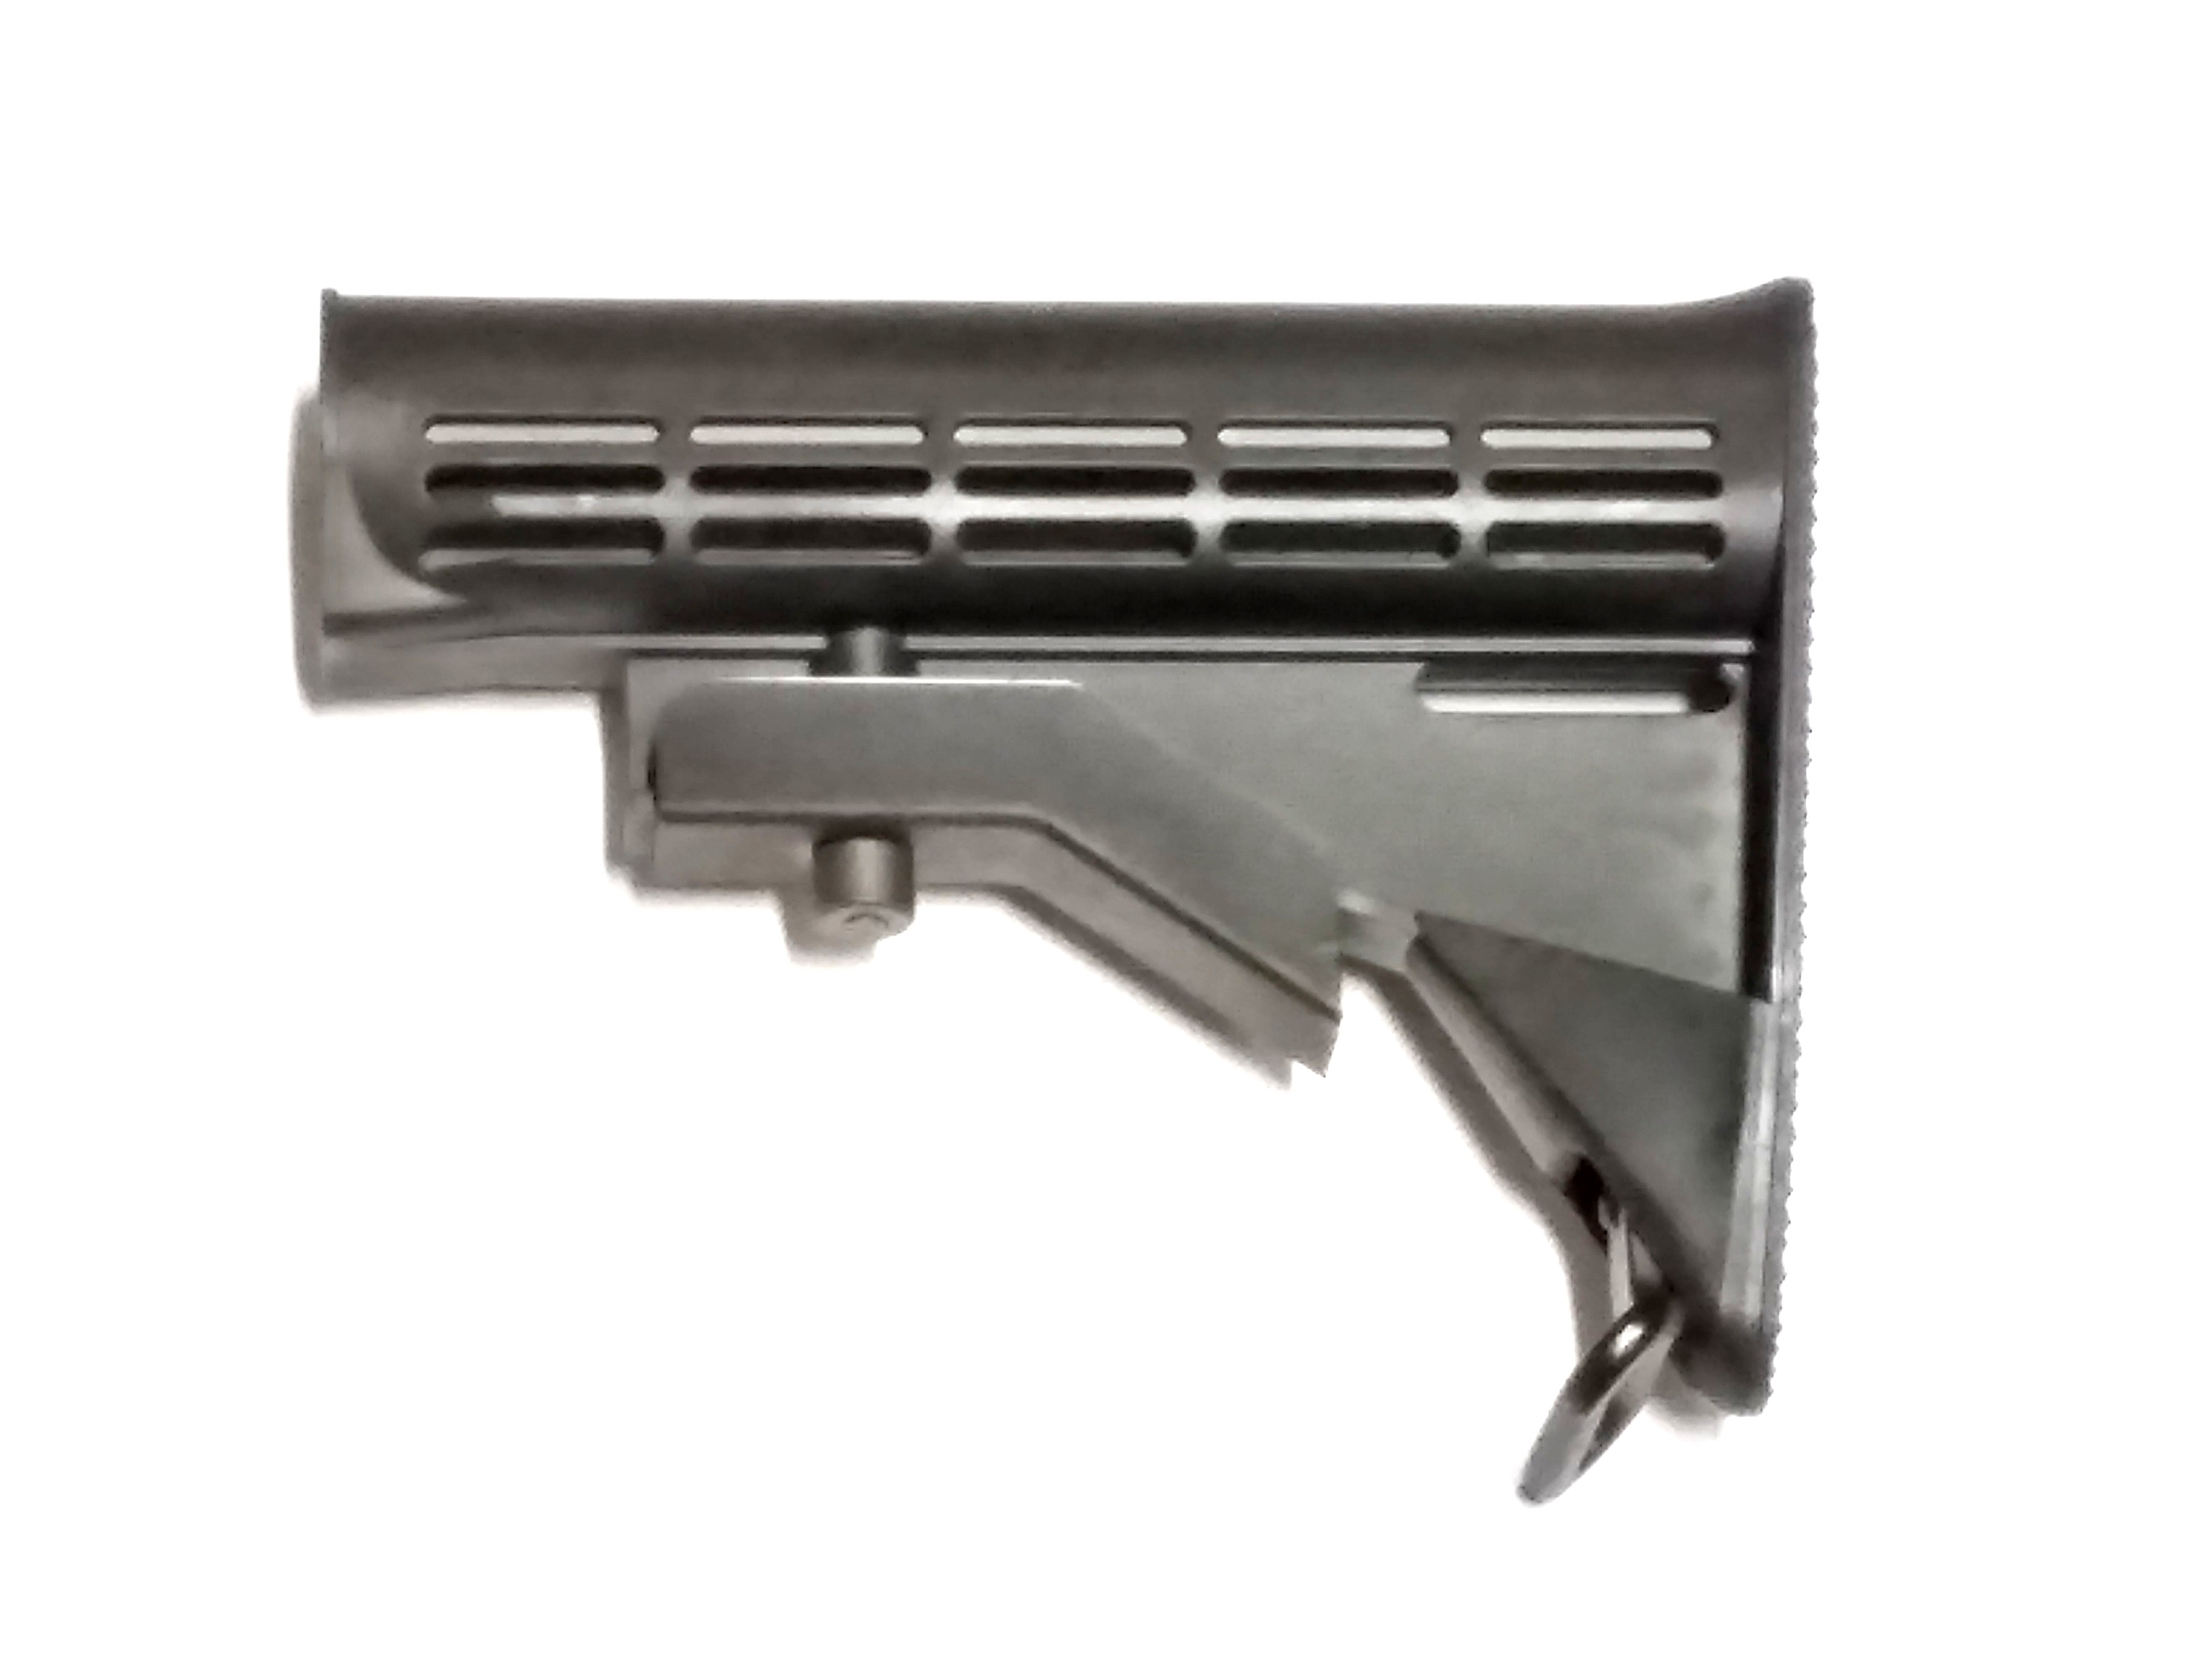 RETRACTABLE STOCK-CLASSIC ARMY